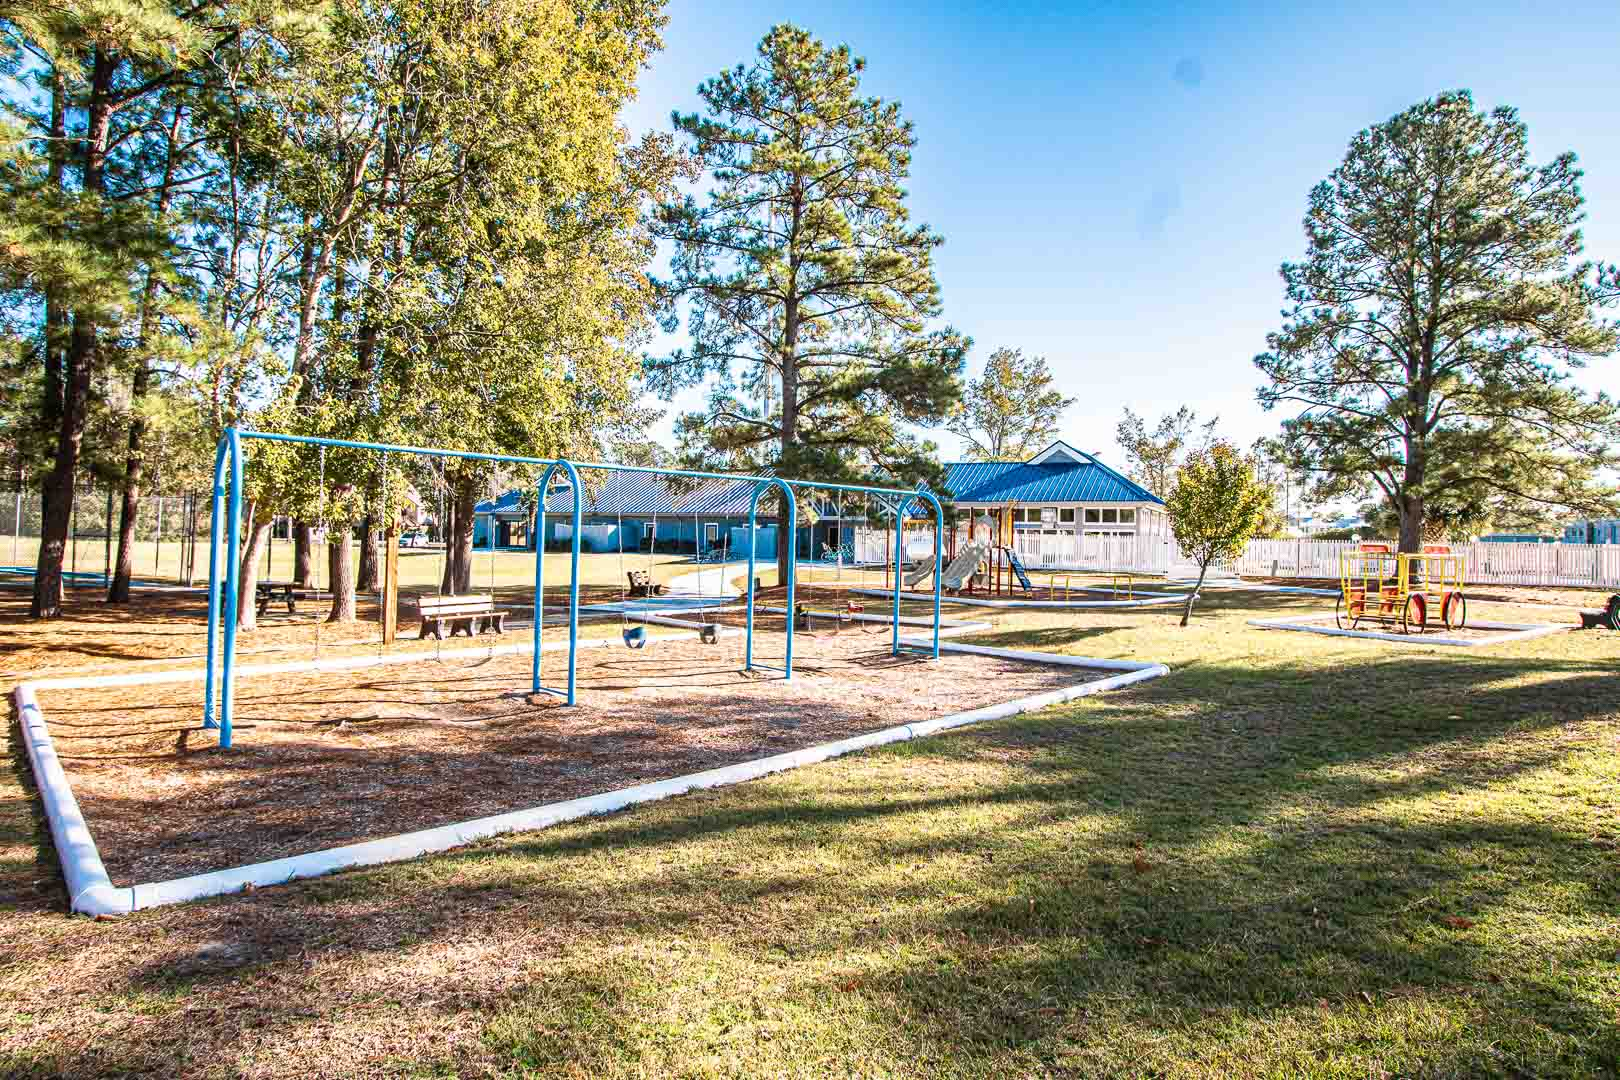 An outside playground area at VRI's Harbourside II in New Bern, North Carolina.